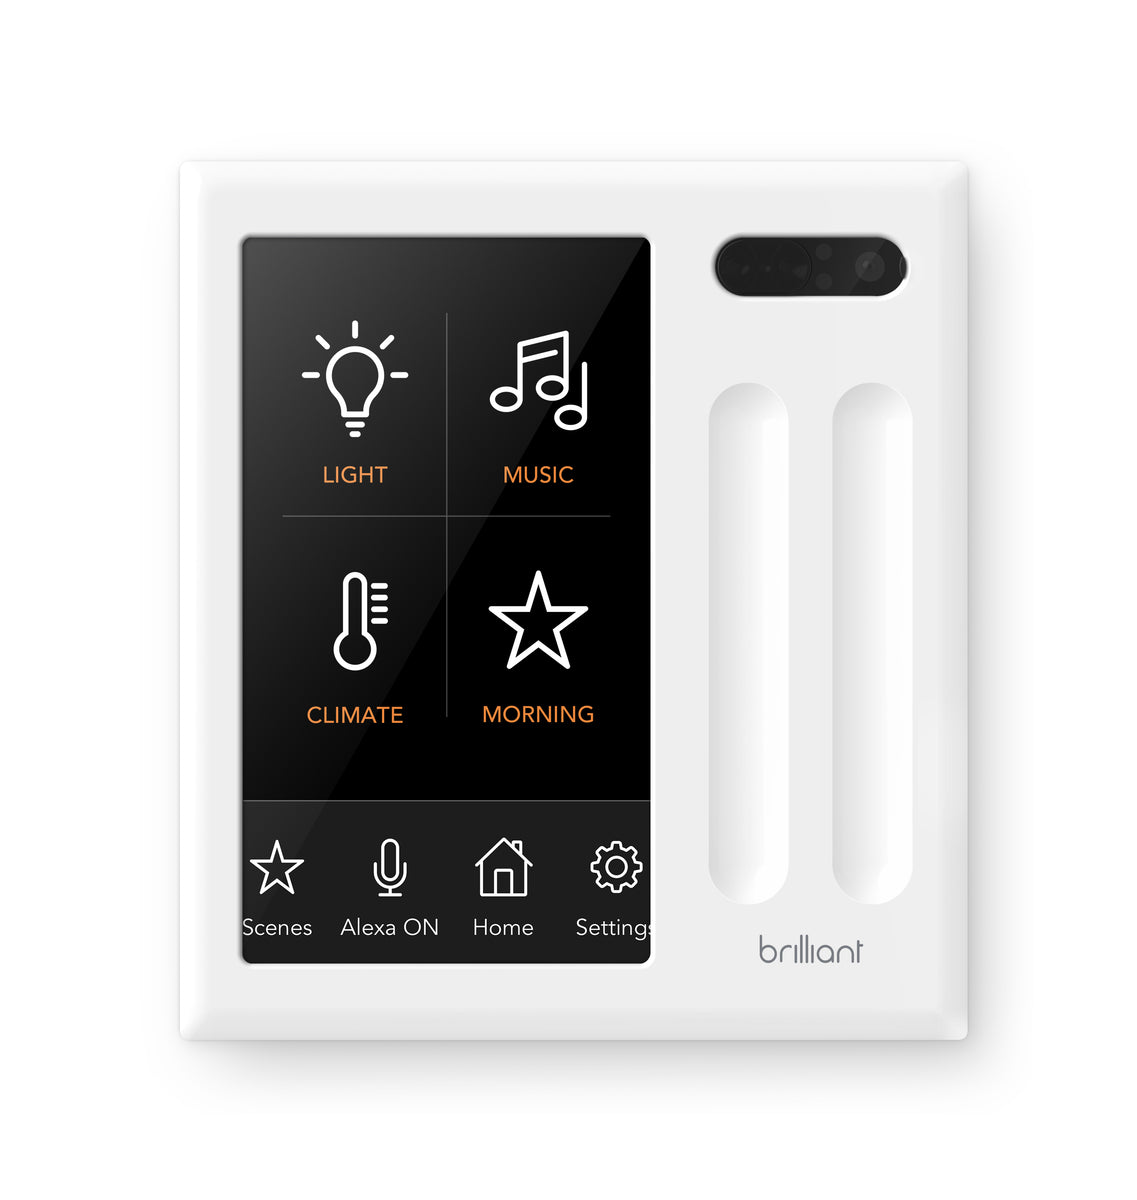 Brilliant: Smart Home Control